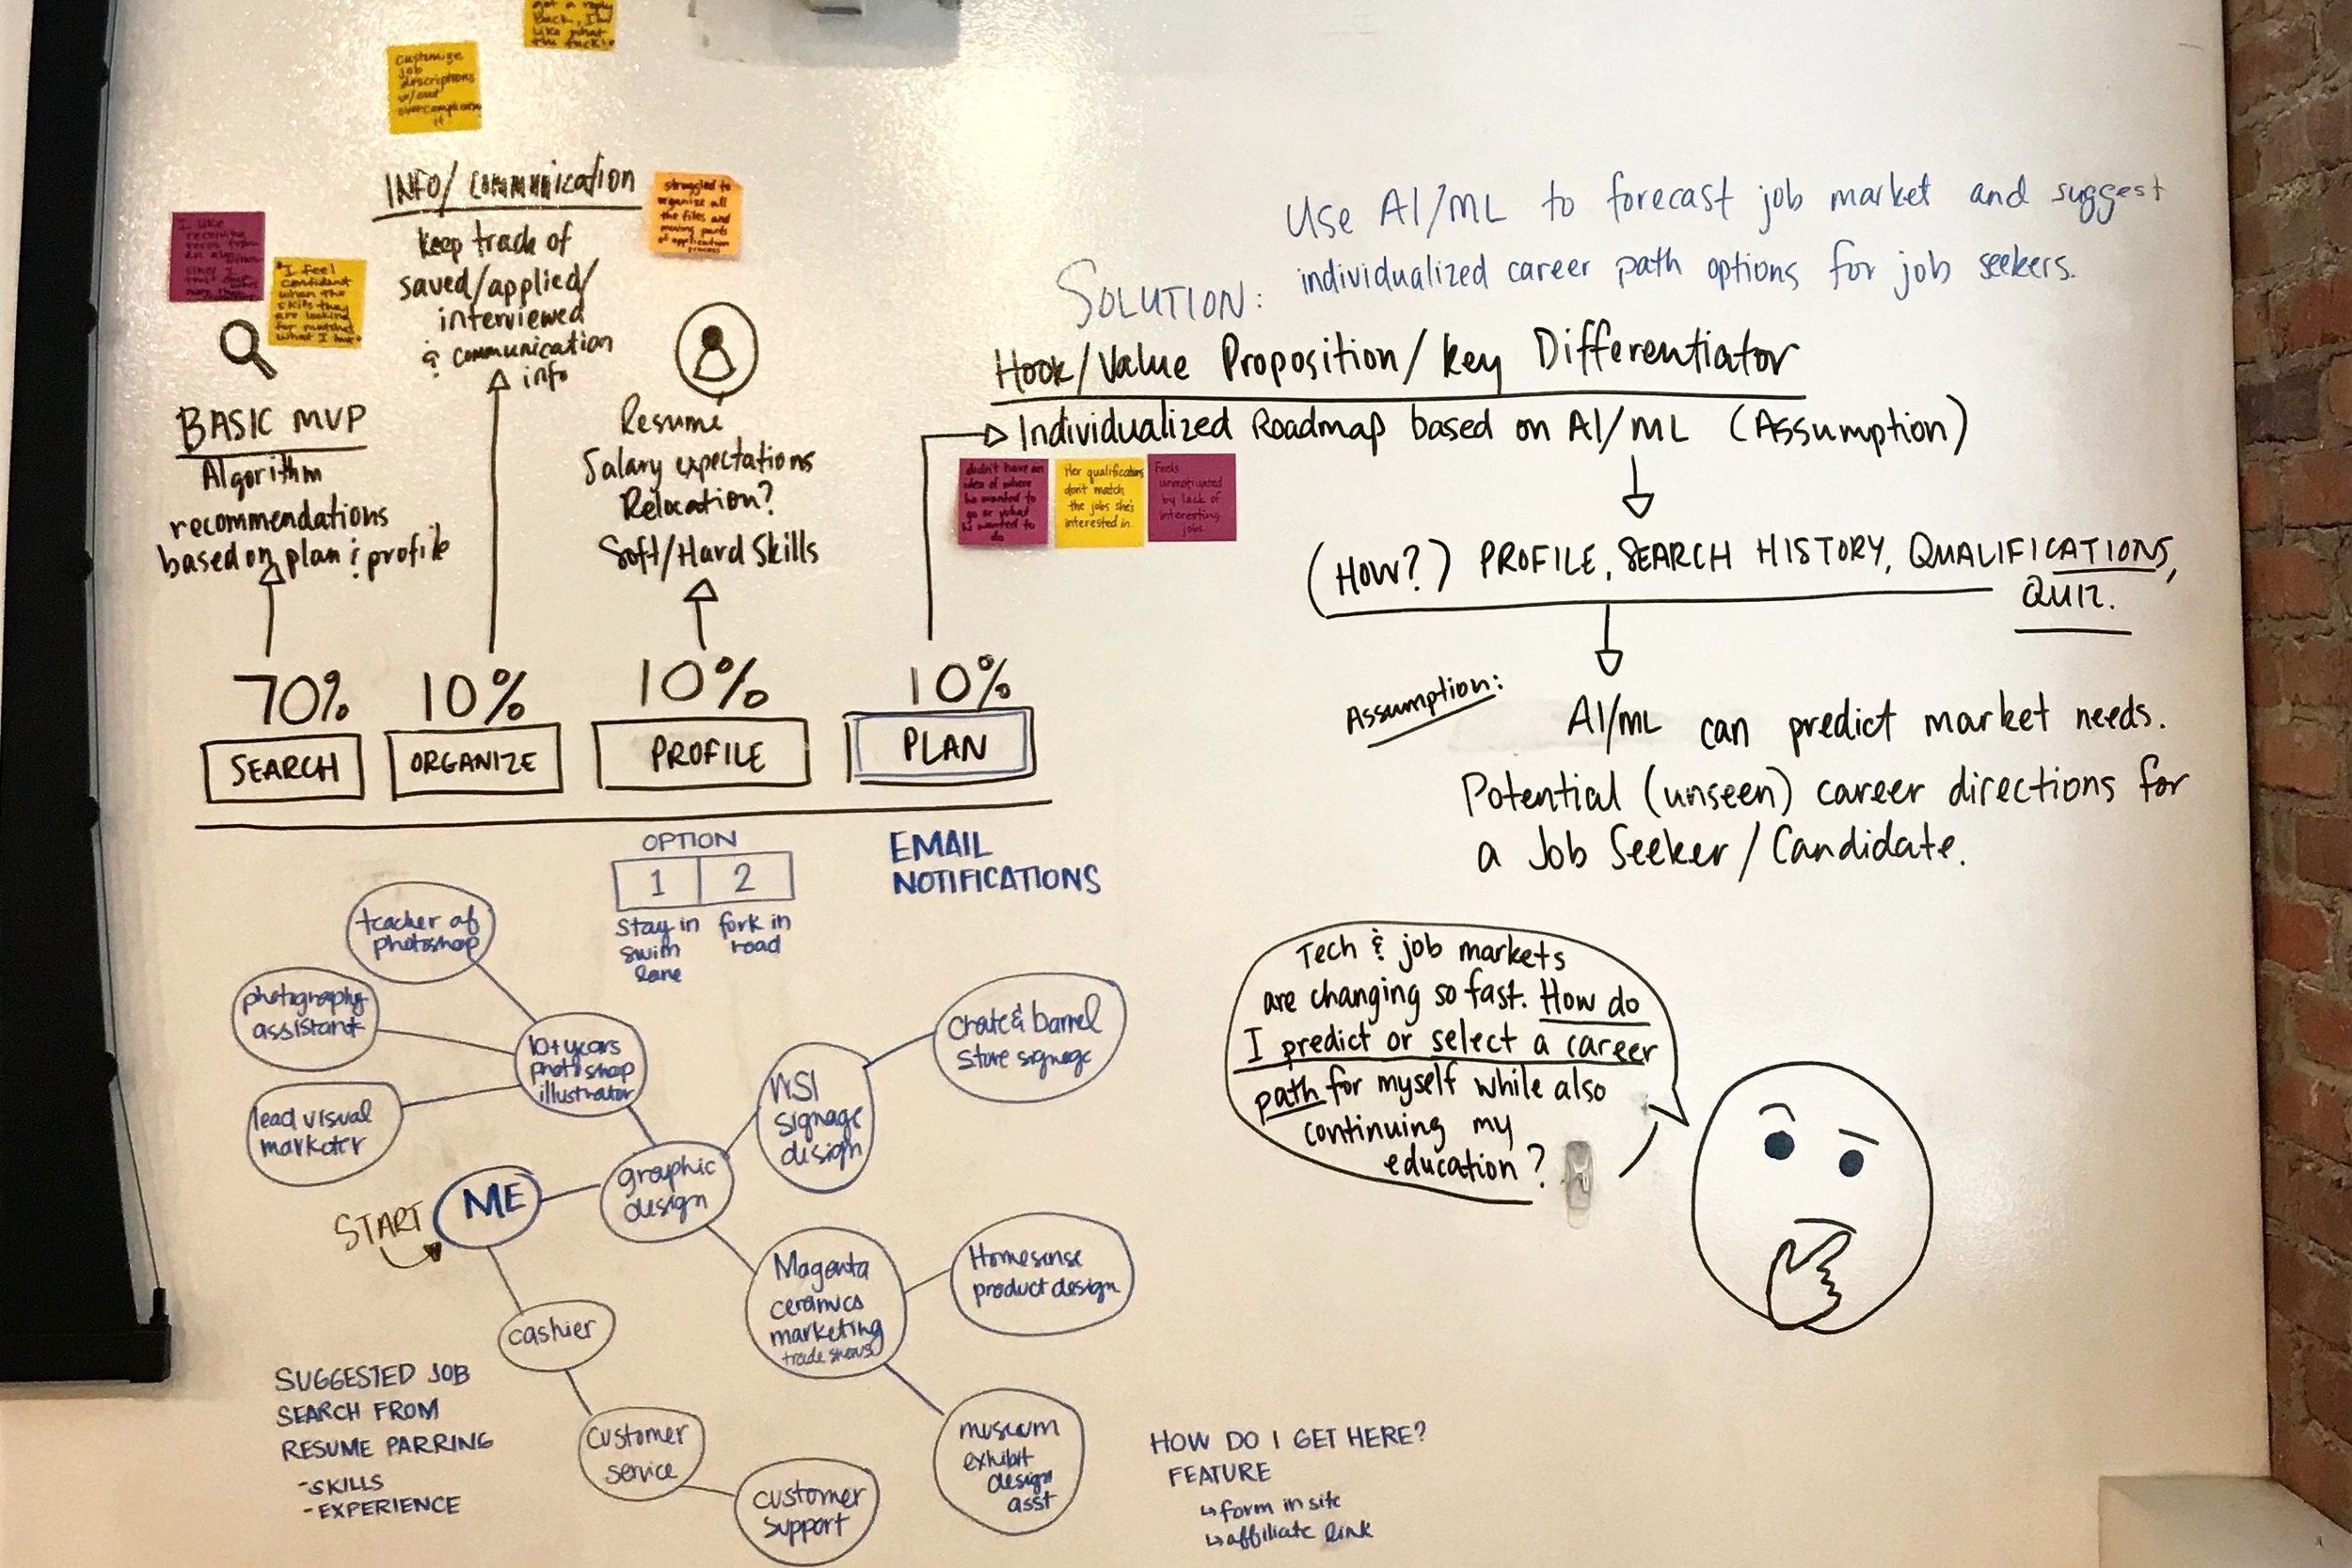 Whiteboard Solution - Our team separated and we each came up with solutions to the job seeker problems we distilled from our affinity map. We reviewed each other's ideas and combined them to create an innovative solution.